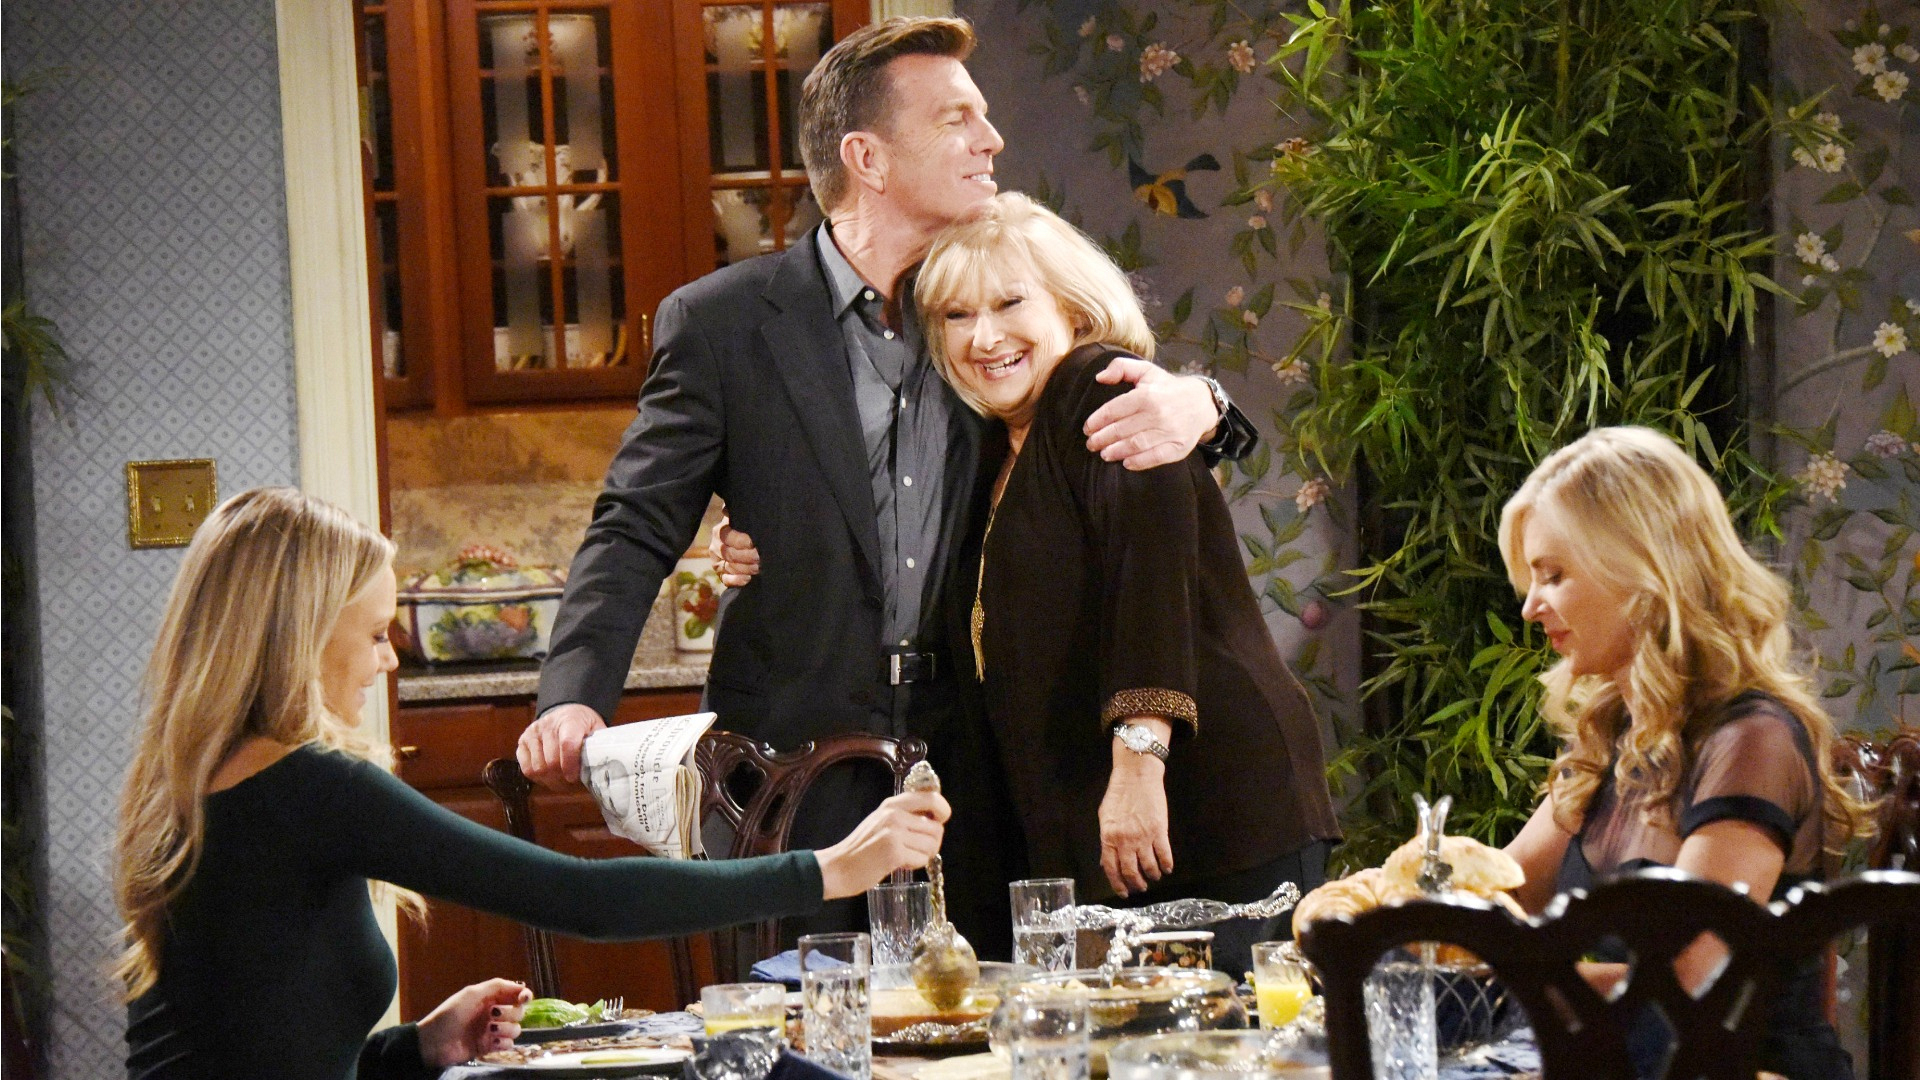 The Young and the Restless - Holiday Episode 12/07/16